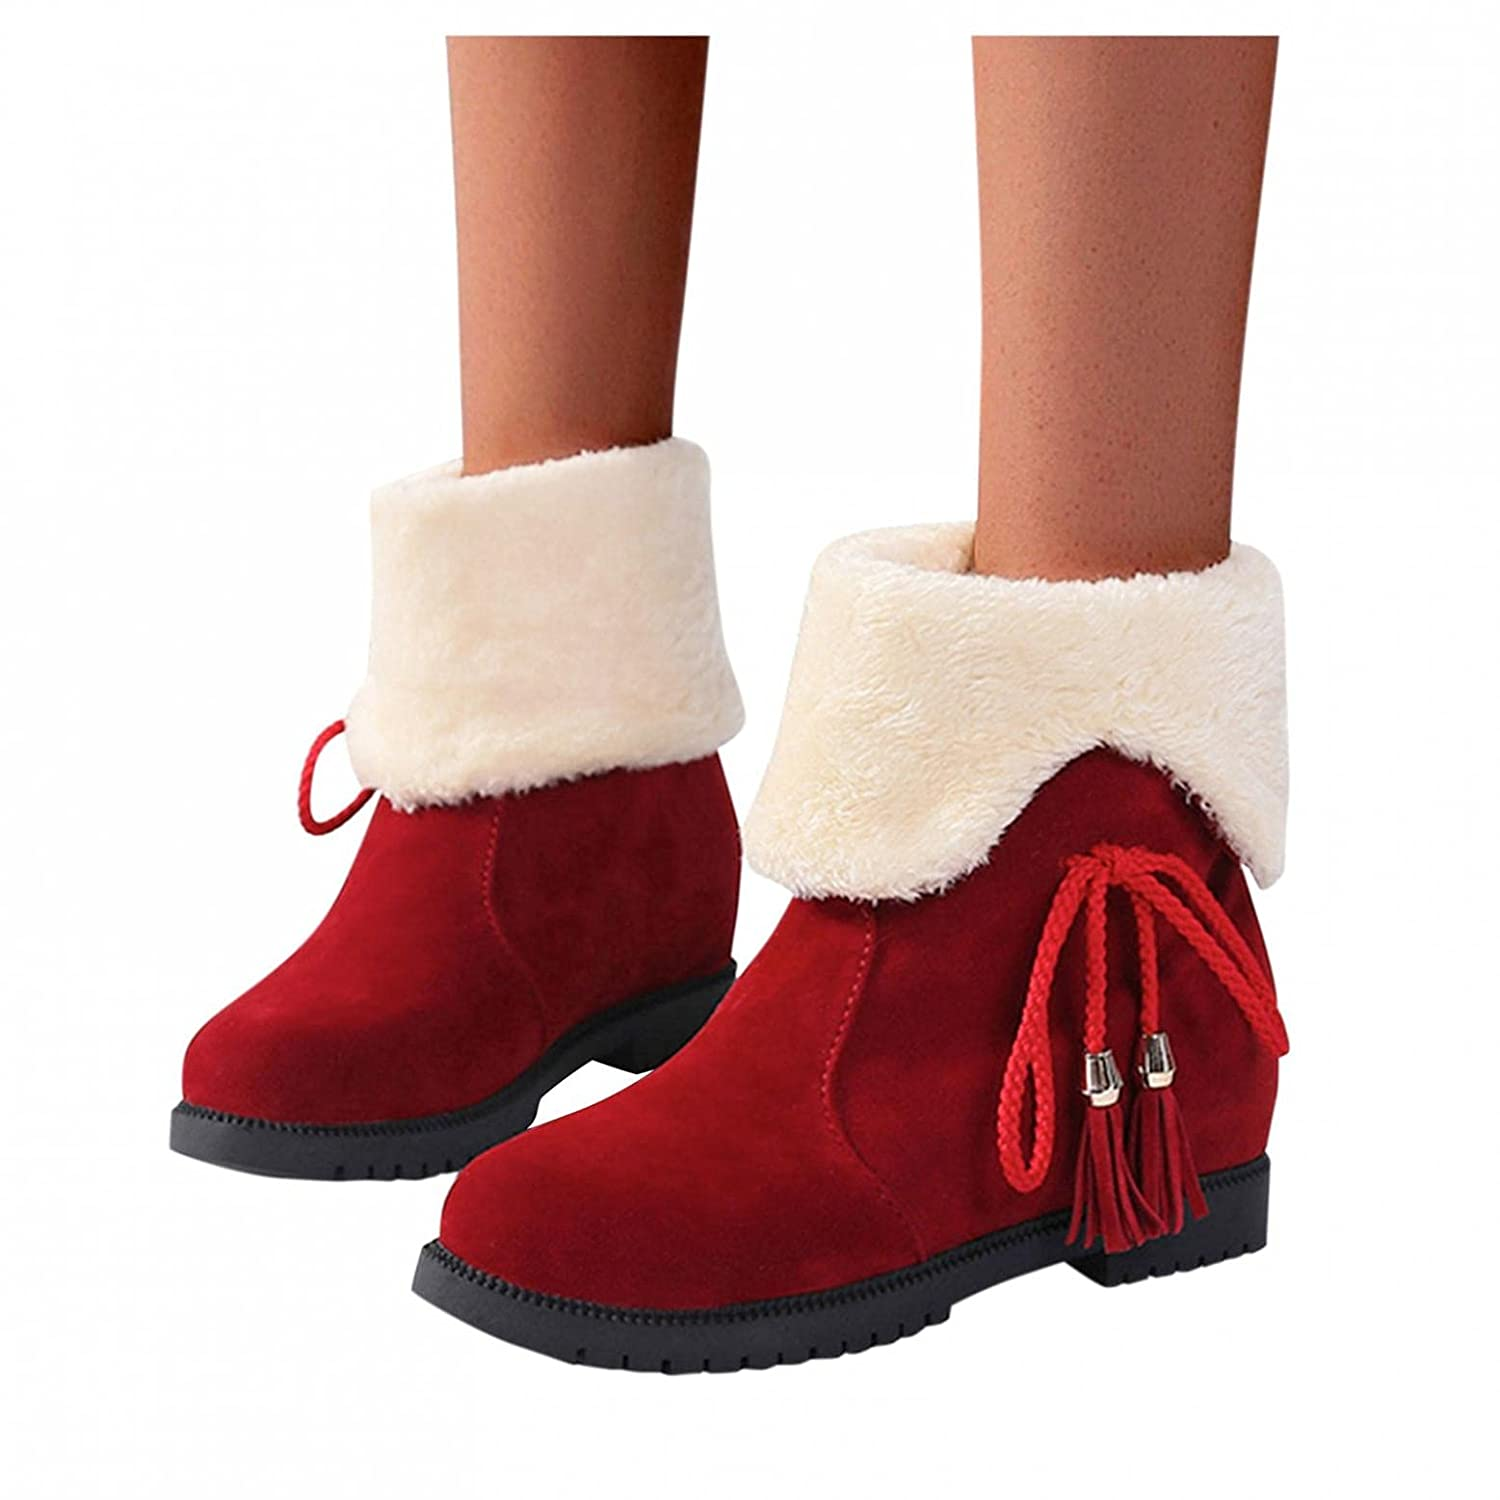 Padaleks Snow Boots for Women Warm Outdoor Slip On Fur Lined Winter Short Booties Anti-Slip Comfort Flat Shoes